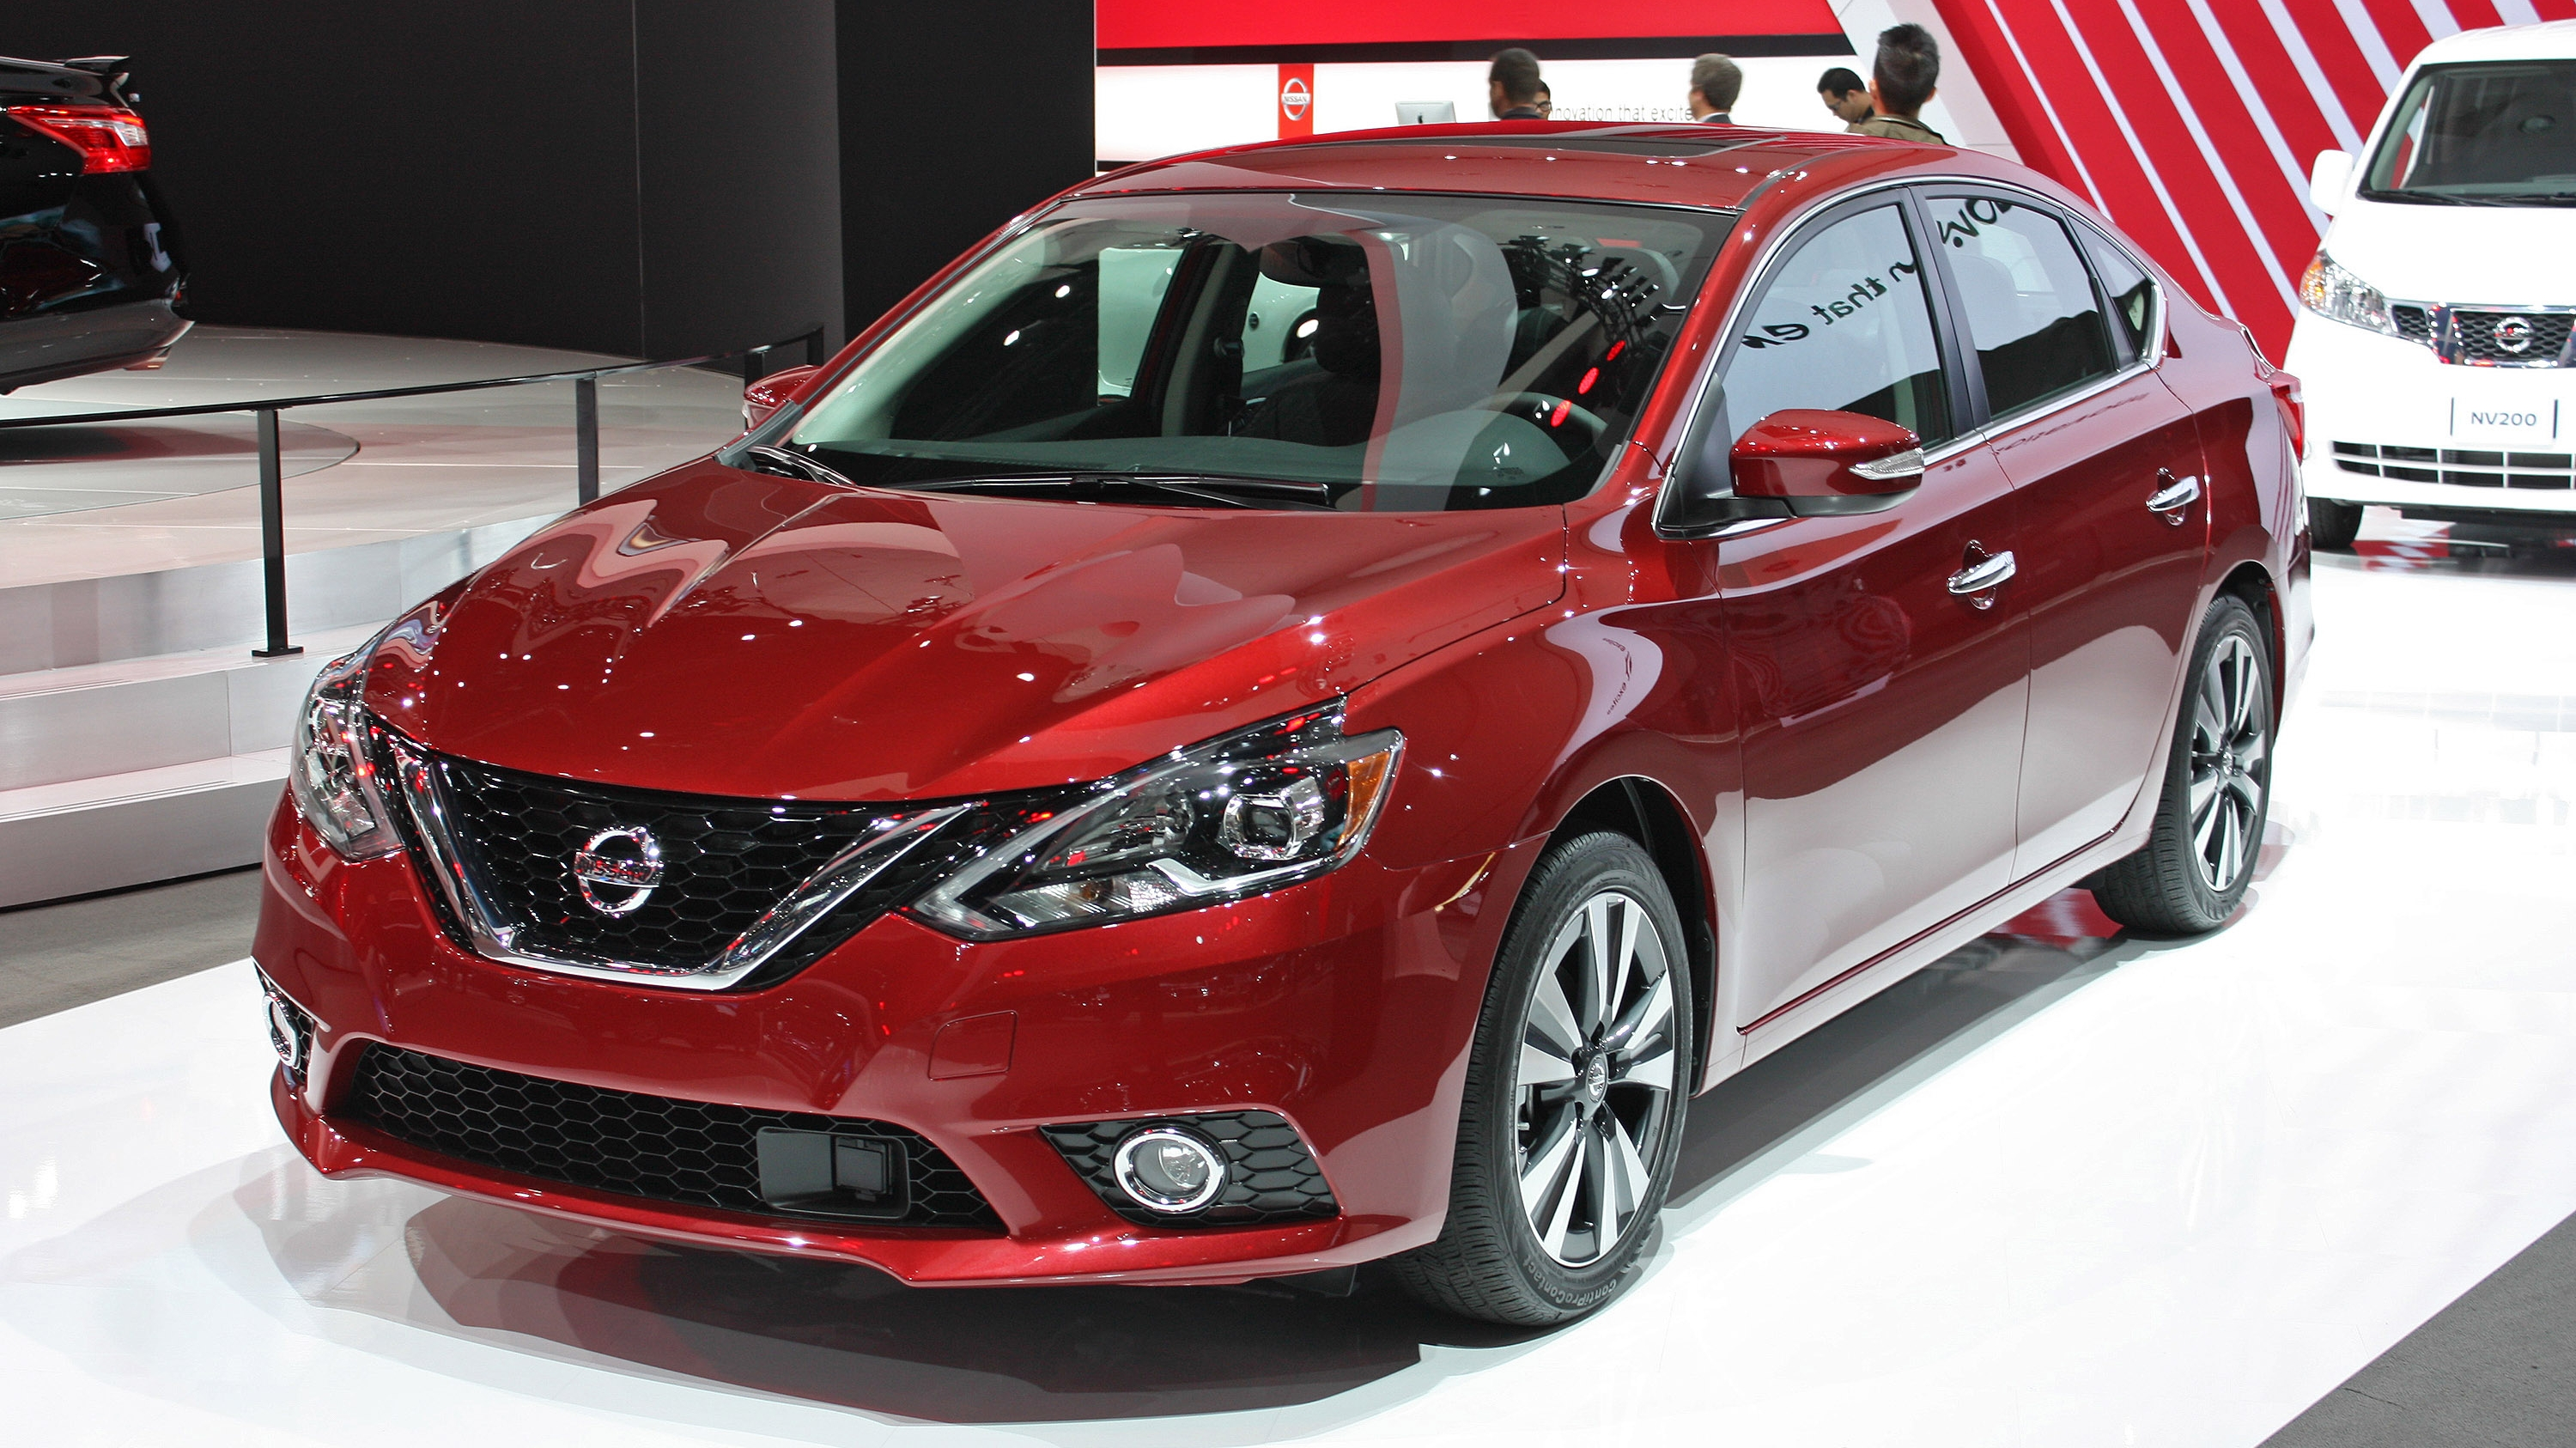 2016 nissan sentra top speed. Black Bedroom Furniture Sets. Home Design Ideas